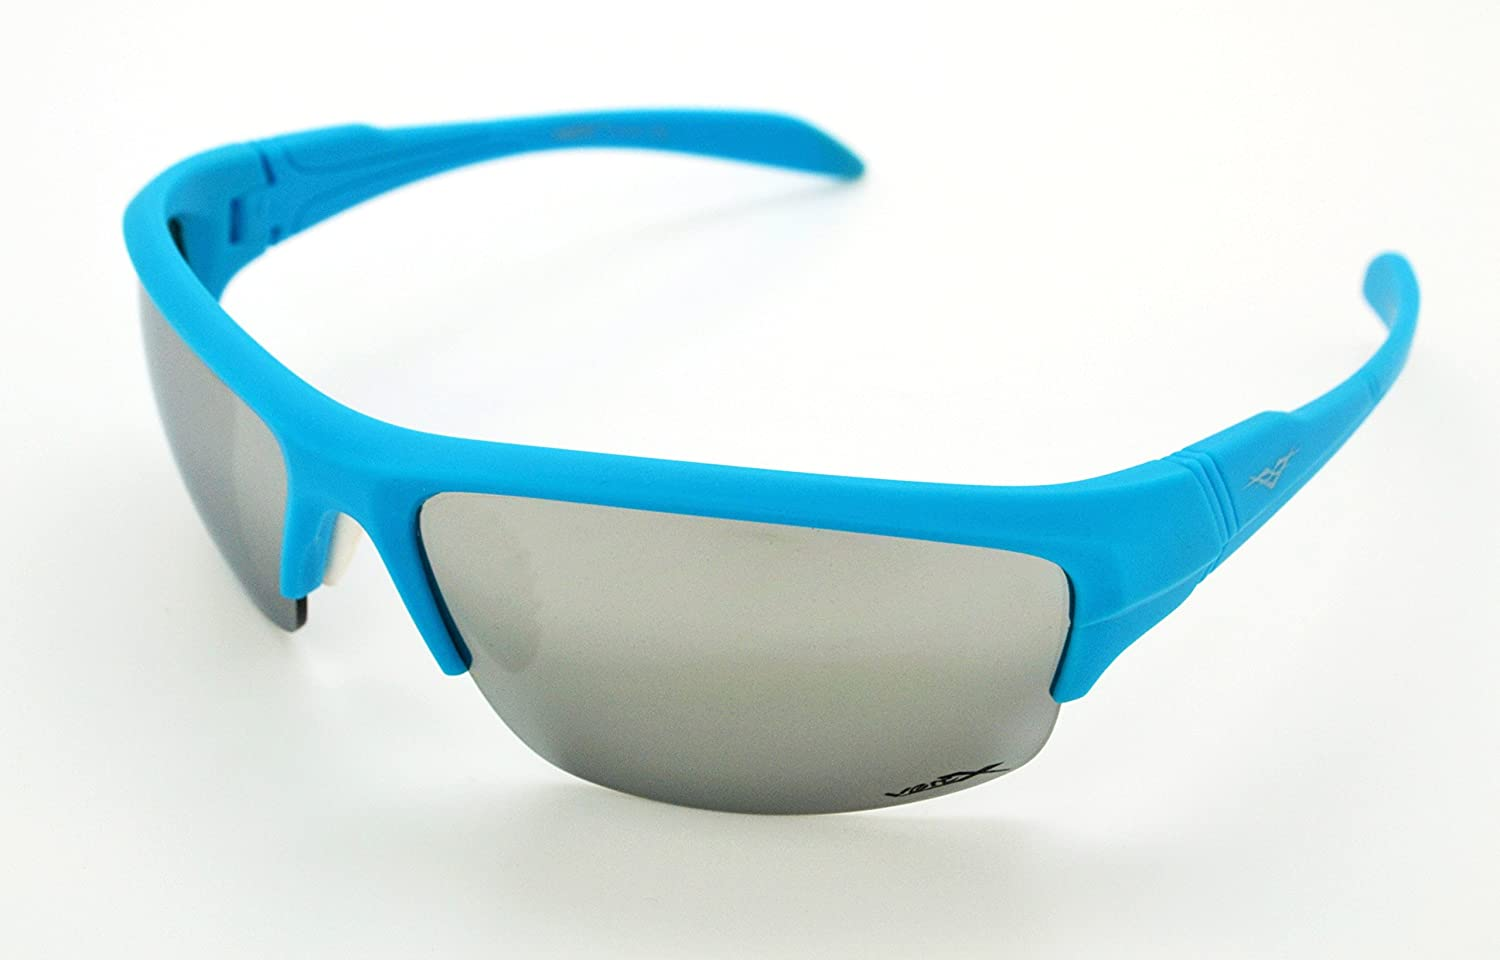 8e10968dad77 Amazon.com  VertX Lightweight Durable Mens   Womens Athletic Sport Wrap  Sunglasses Cycling Running w FREE Microfiber Pouch - Blue Frame - Silver  Lens  ...